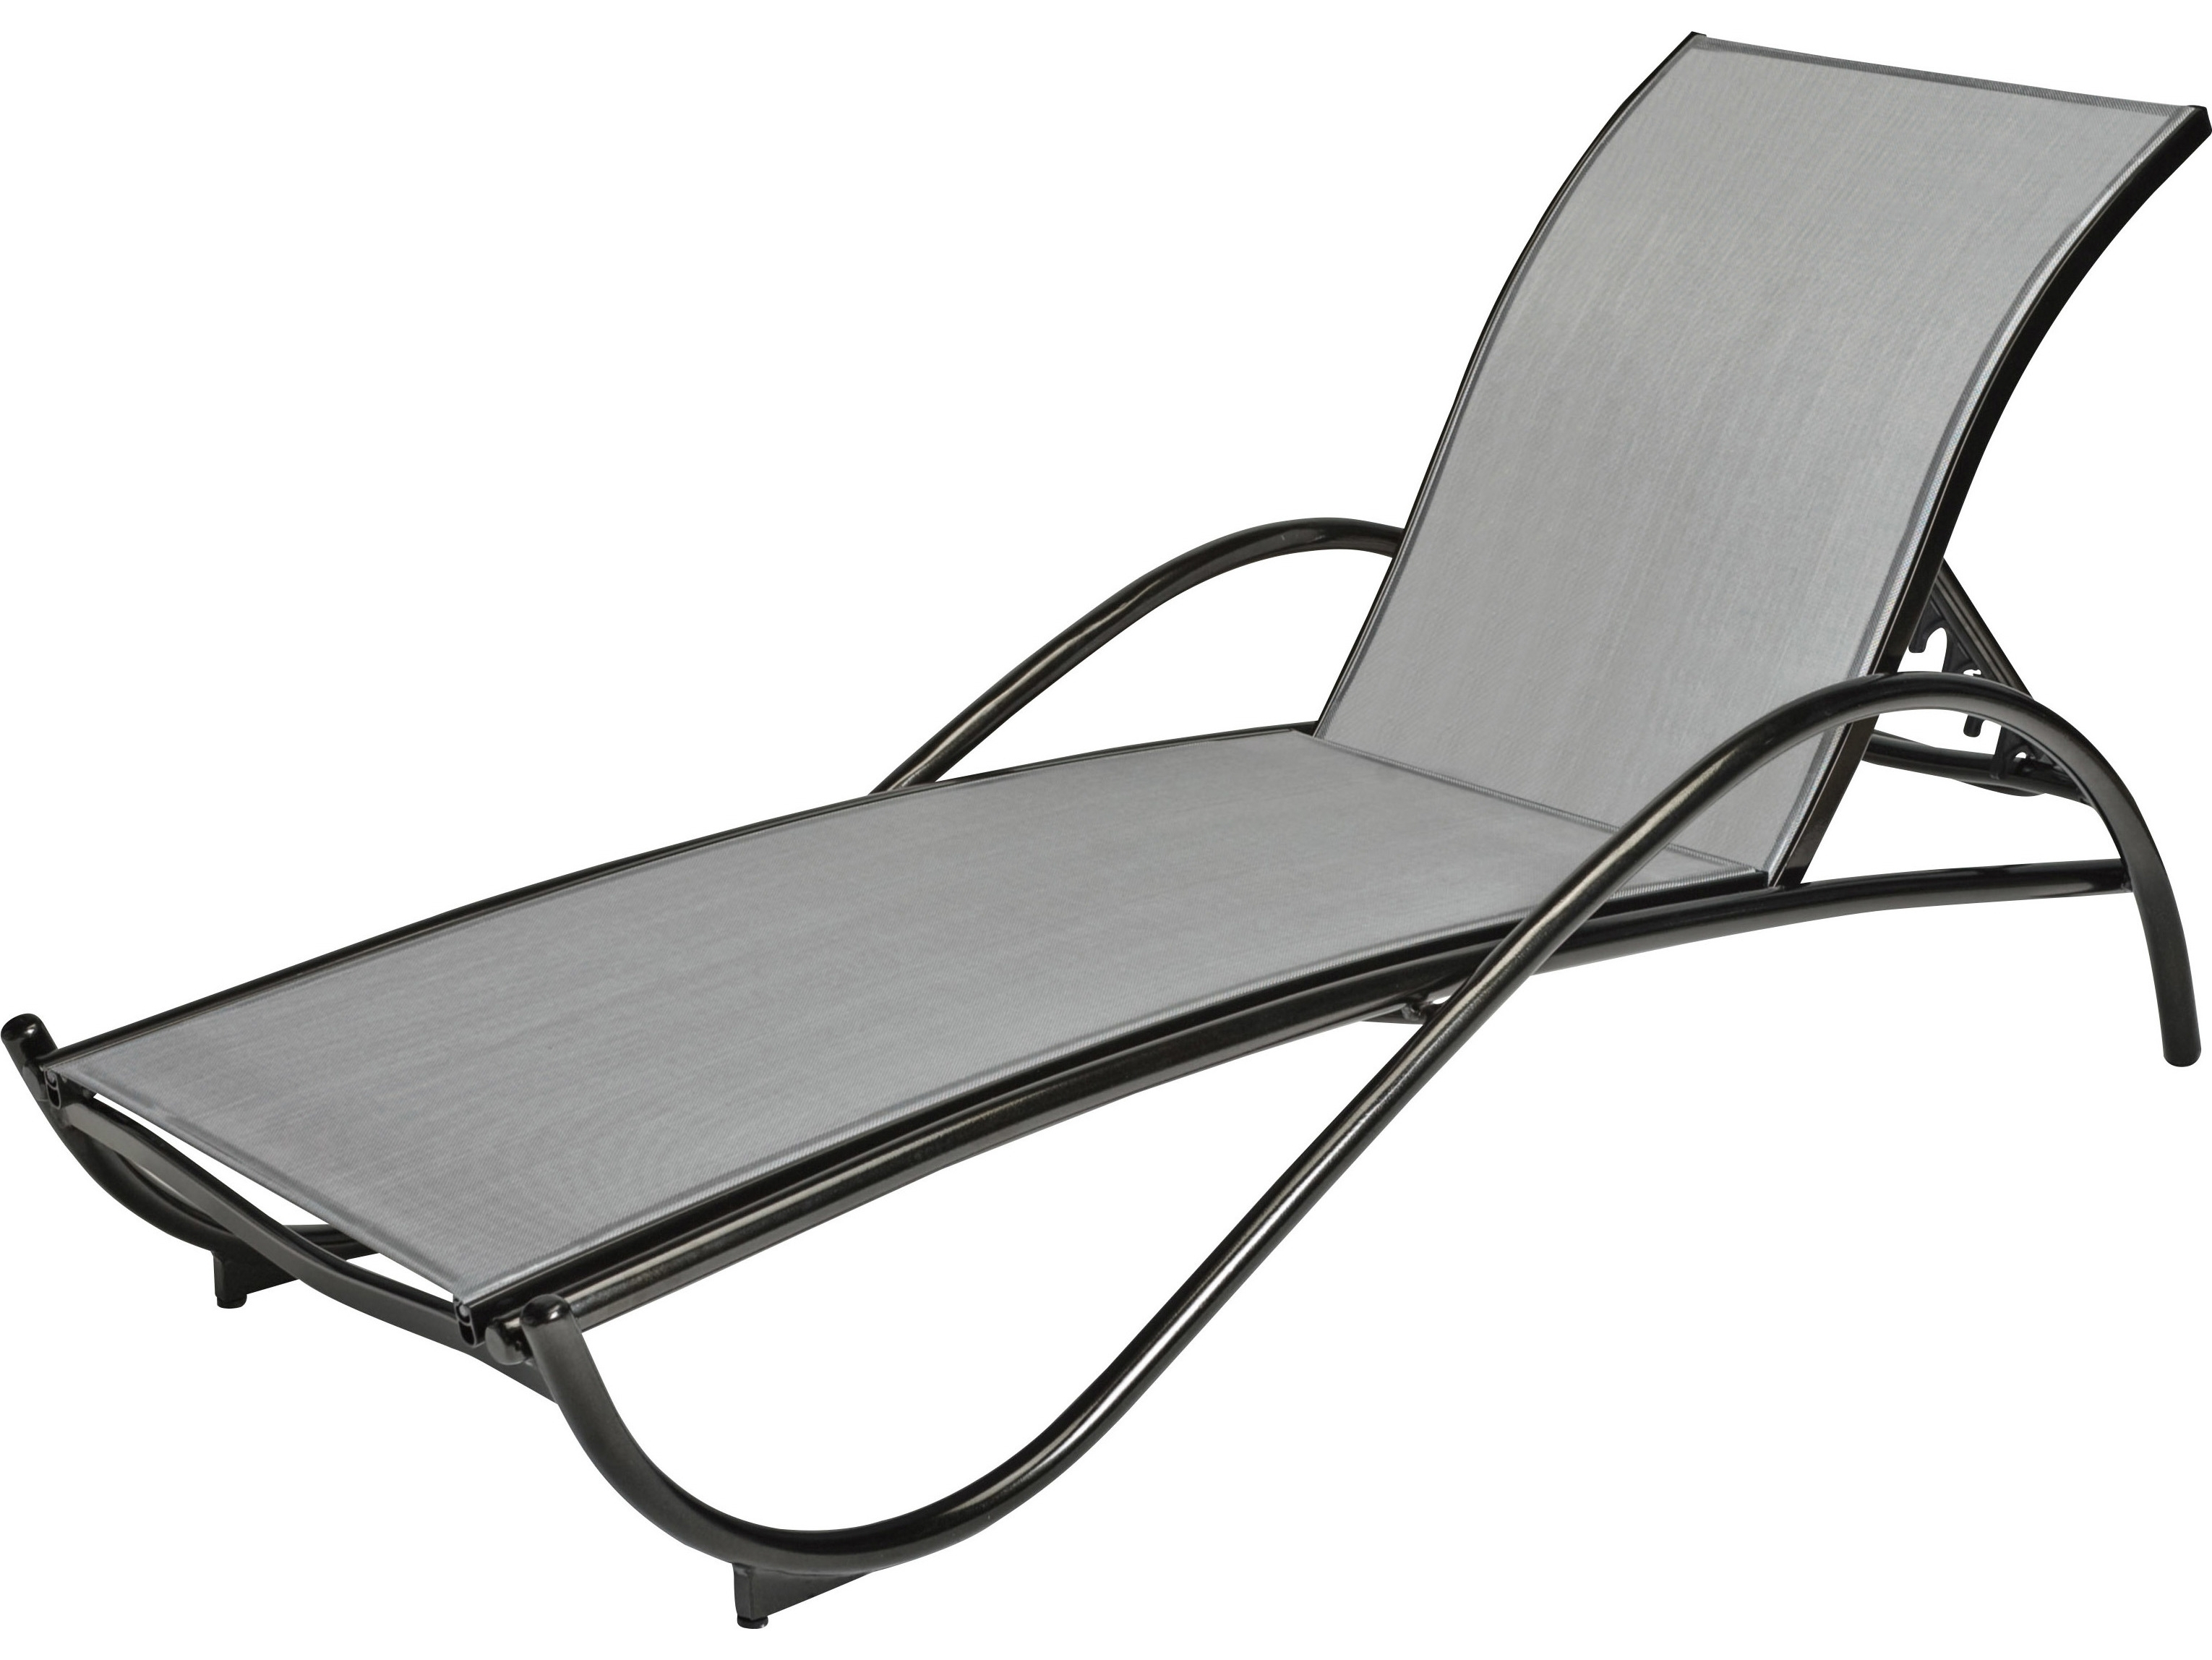 Picture 4 Of 38 – Lounge Outdoor Chairs Elegant Woodard Tribeca For Well Liked Outdoor Chaise Lounge Chairs With Arms (View 13 of 15)